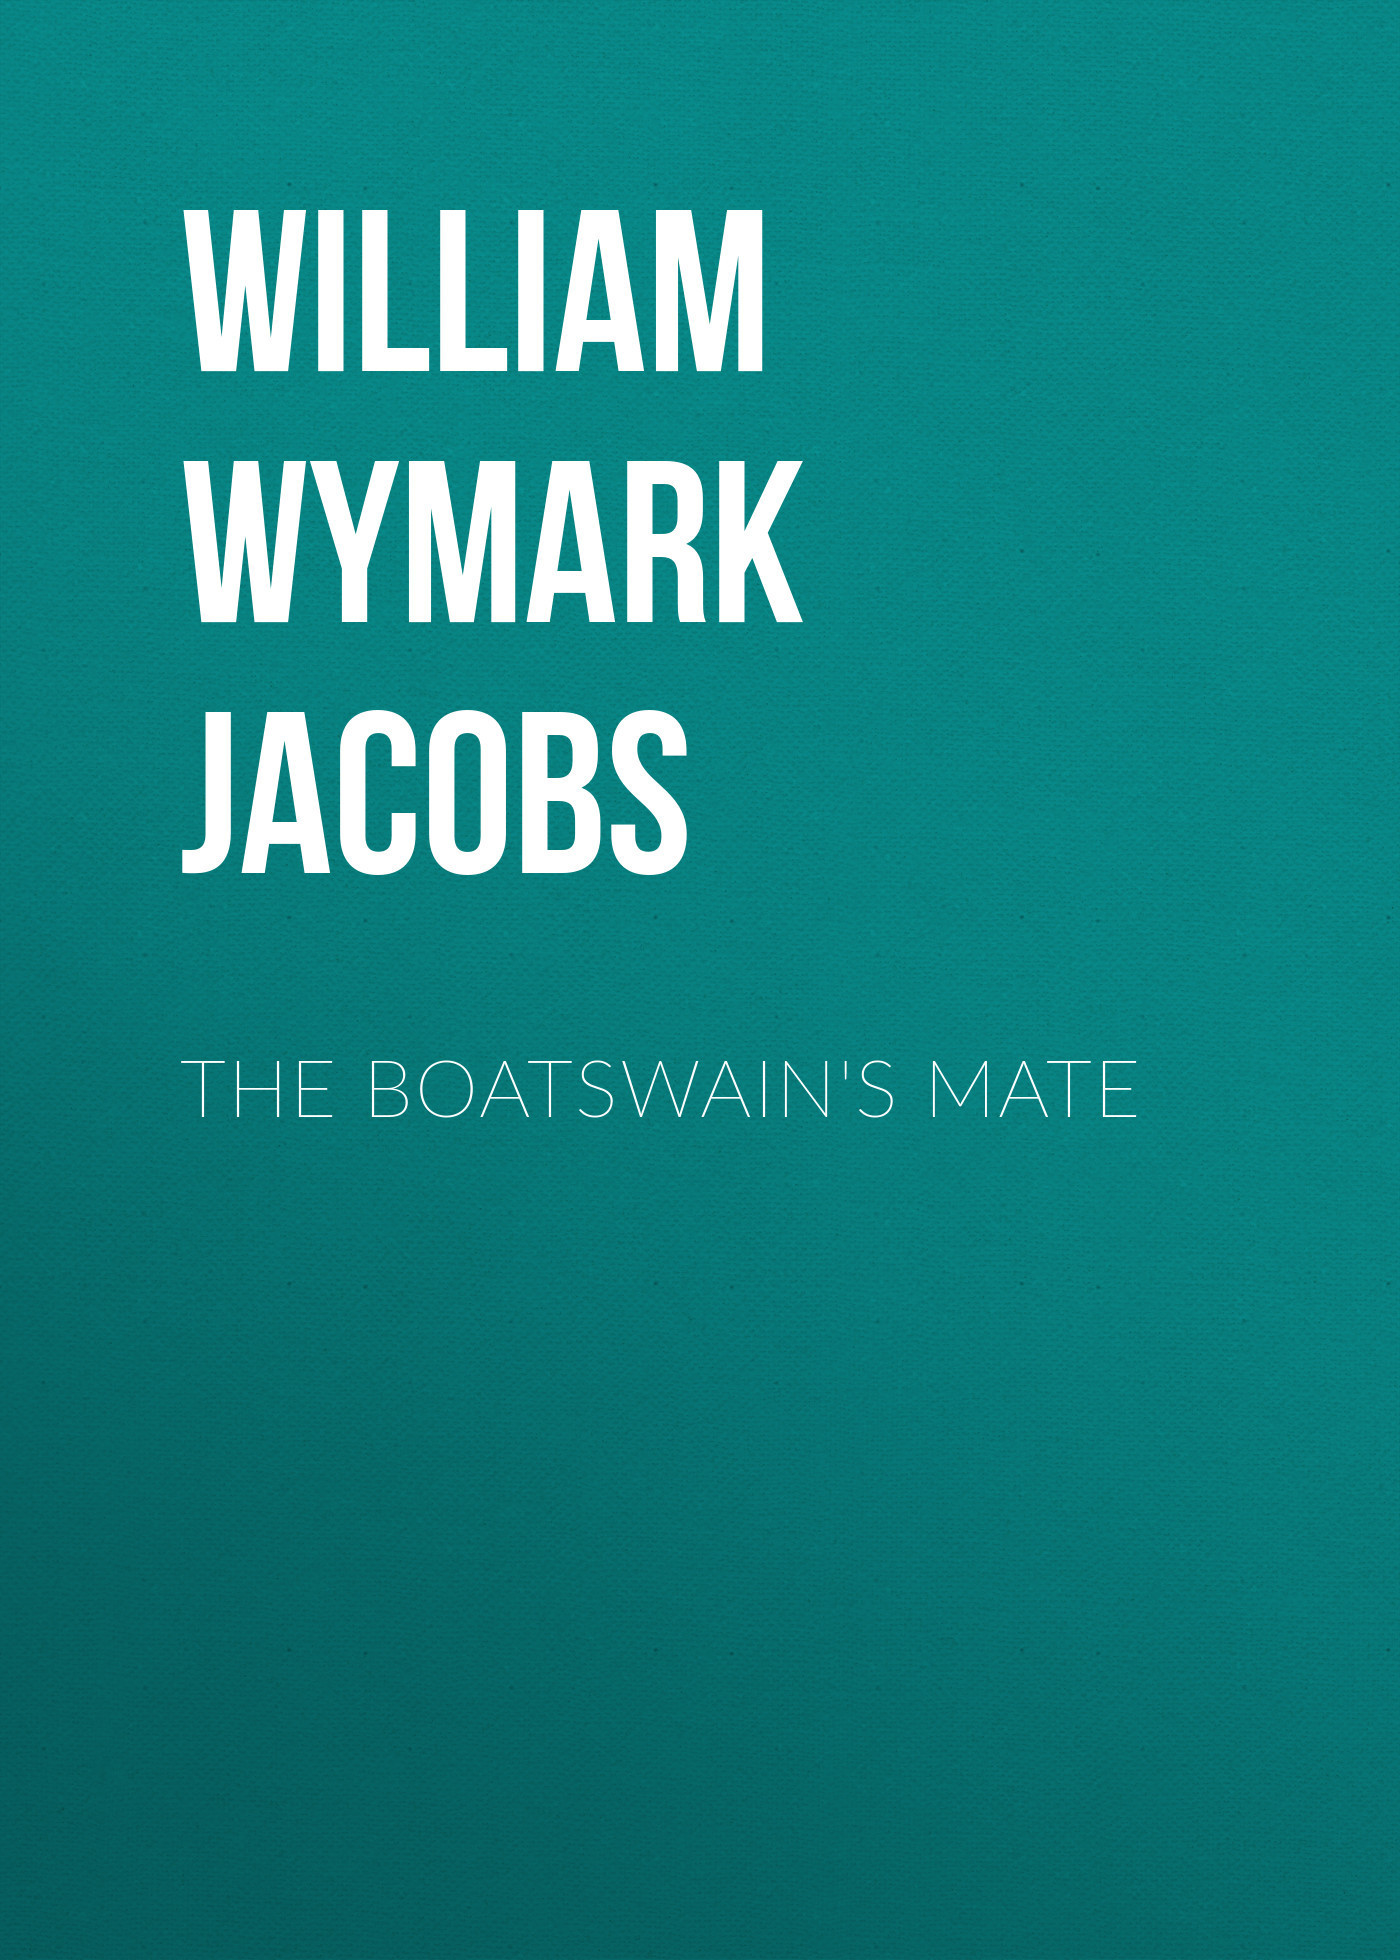 William Wymark Jacobs The Boatswain's Mate william wymark jacobs the convert